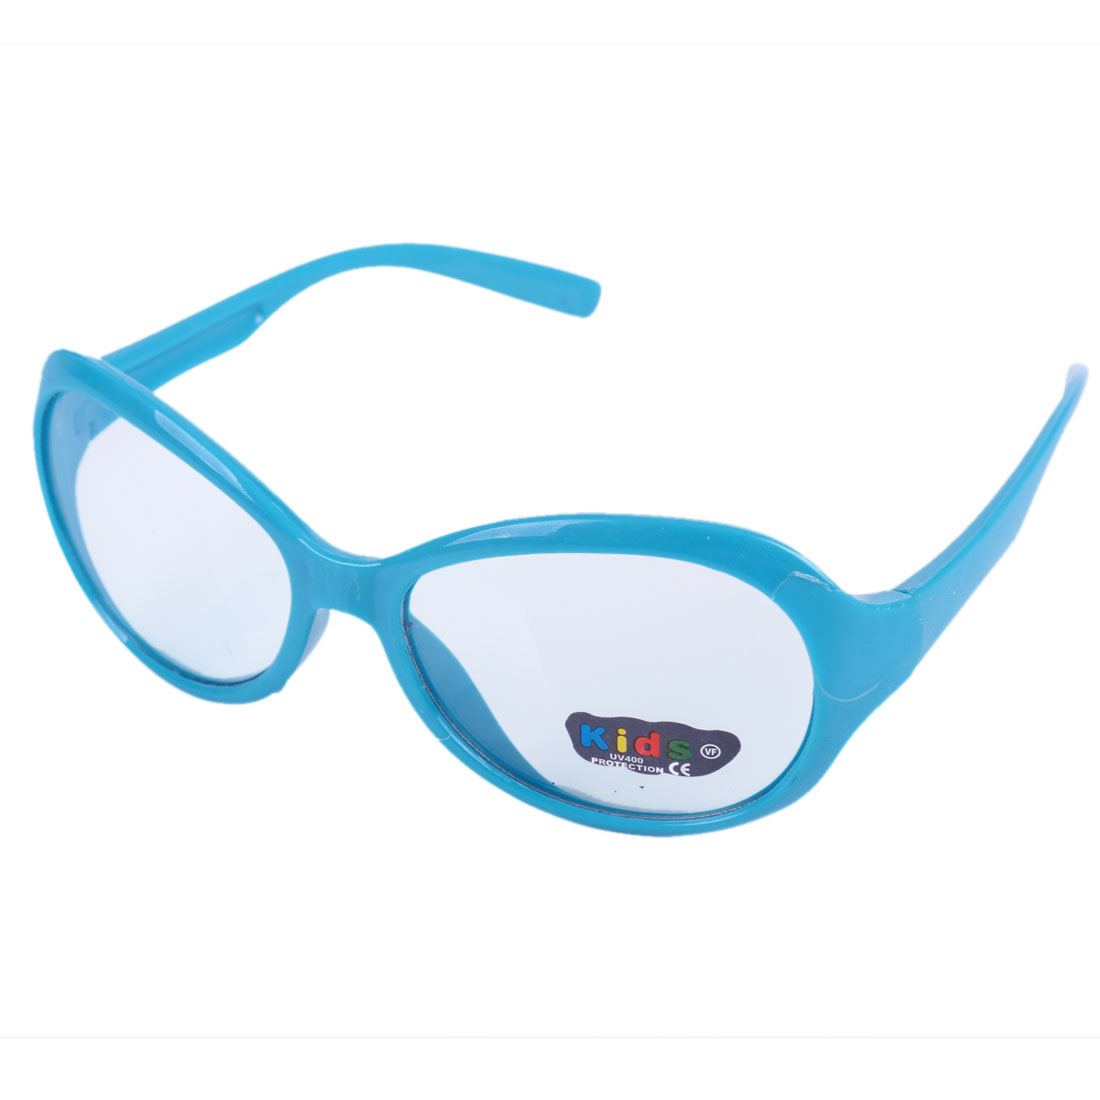 Blue Plastic Full Frame Single Bridge Sunglasses for Children